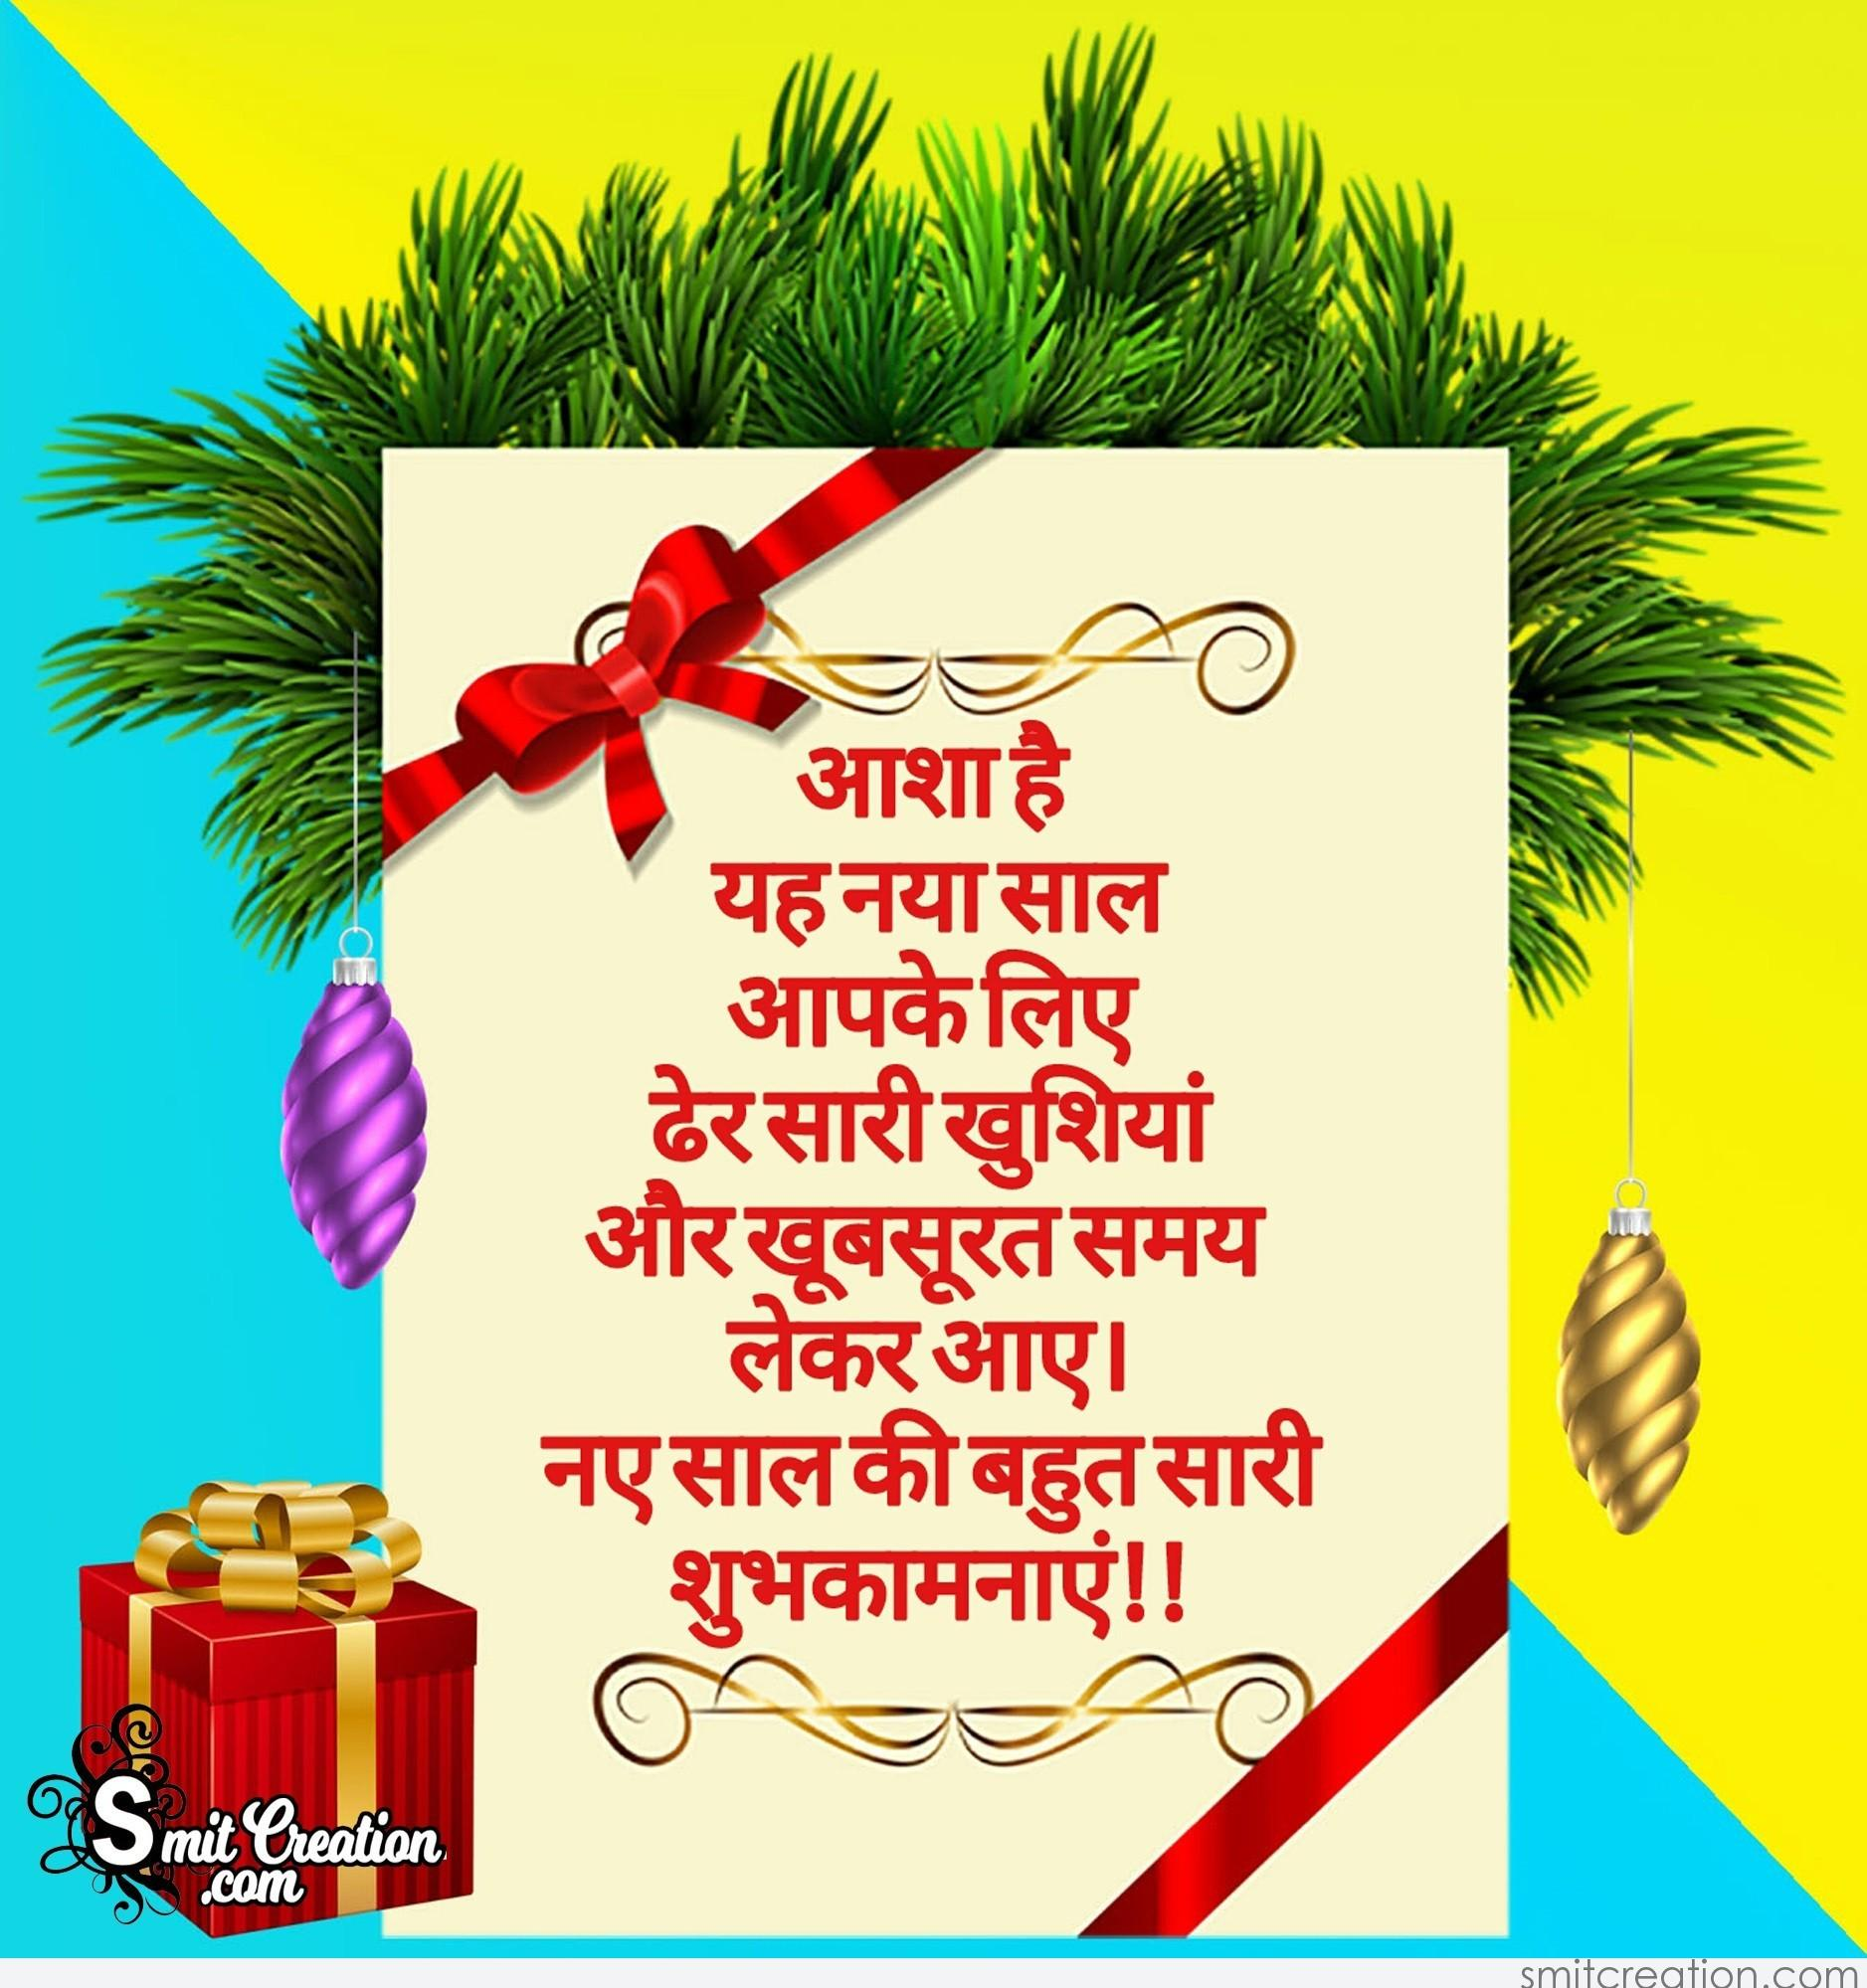 New Year Wishes In Hindi Pictures And Graphics Smitcreation